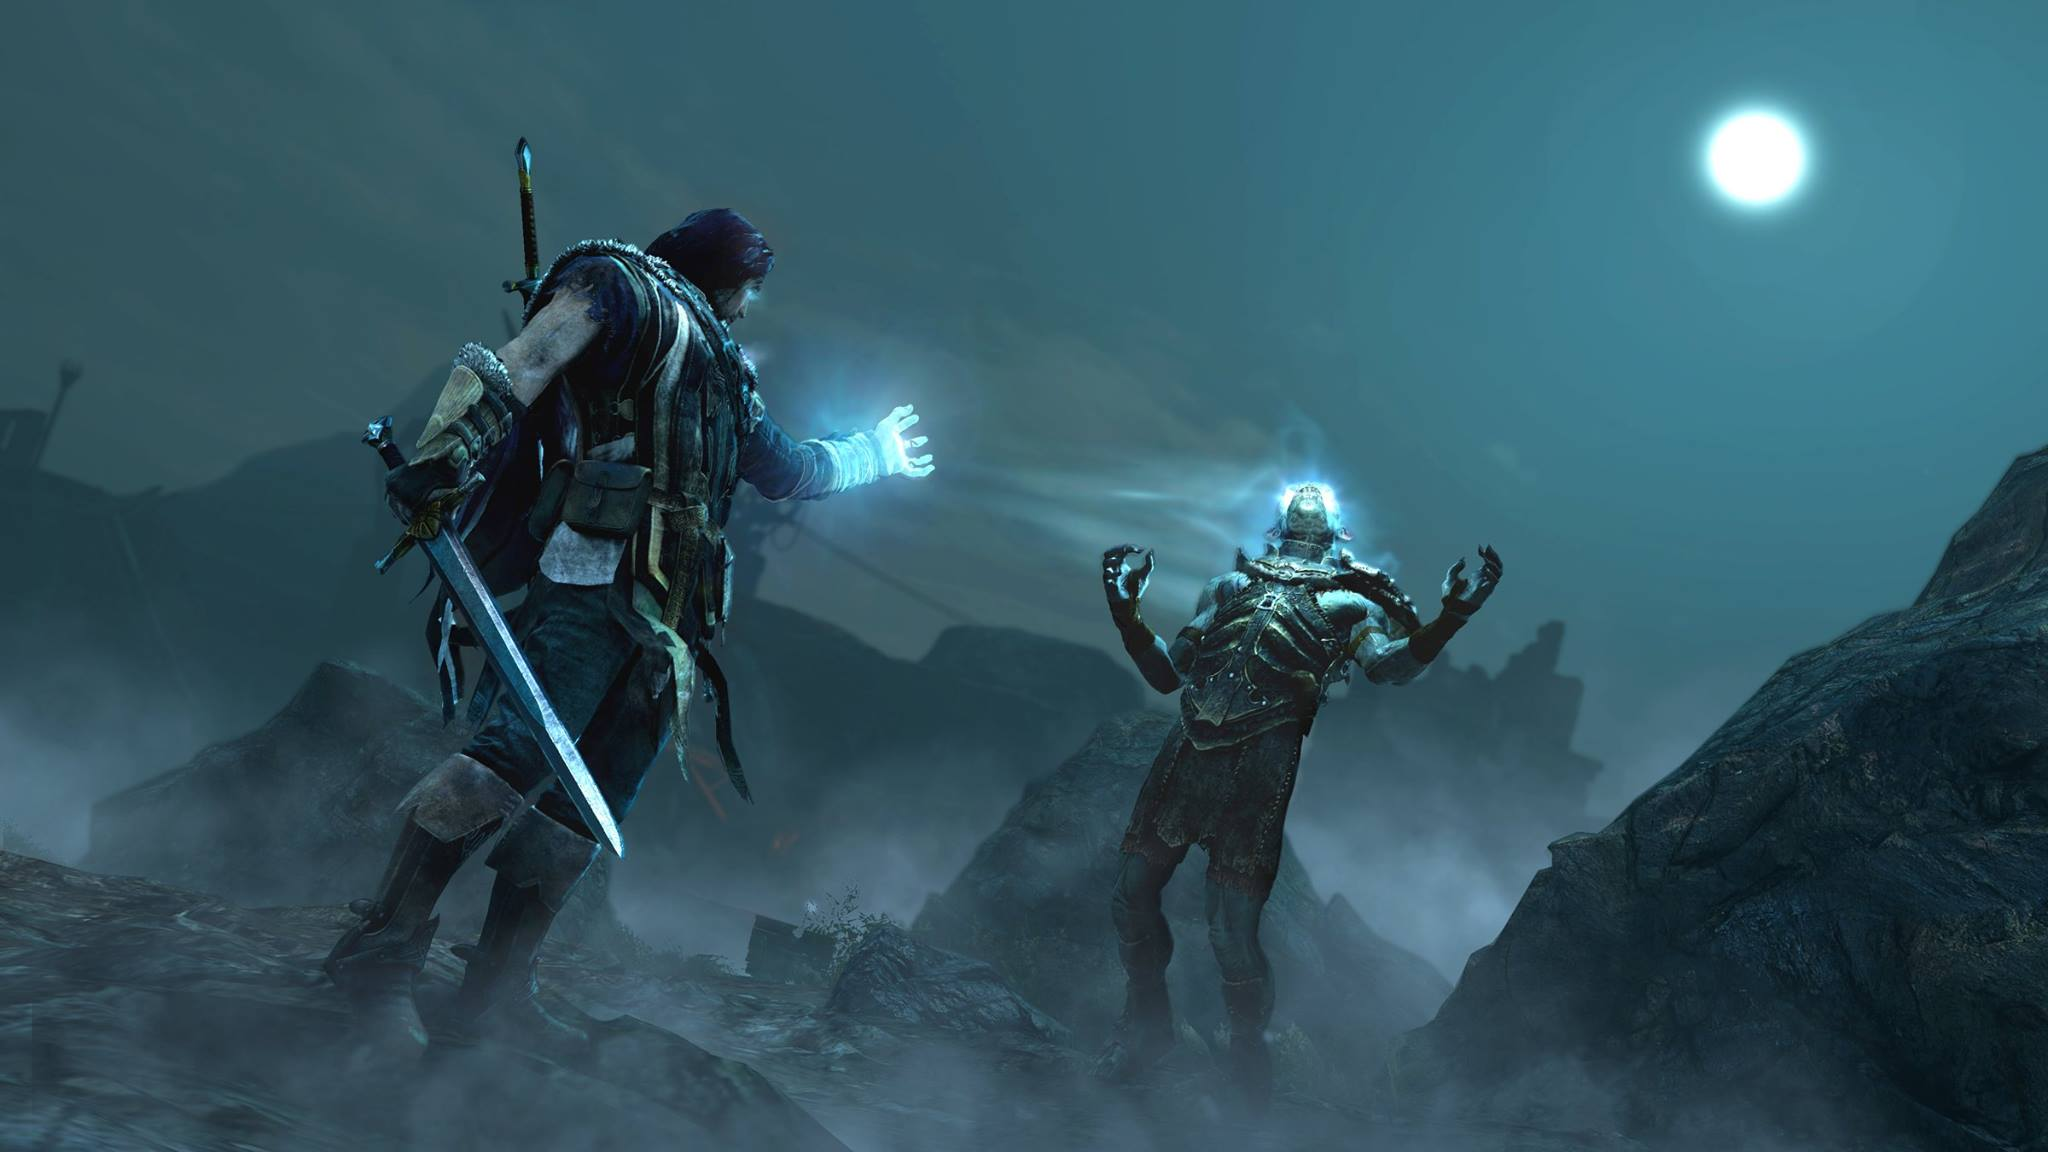 25 shadow of mordor hd wallpapers mytechshout blogging hd shadow of mordor wallpaper voltagebd Choice Image